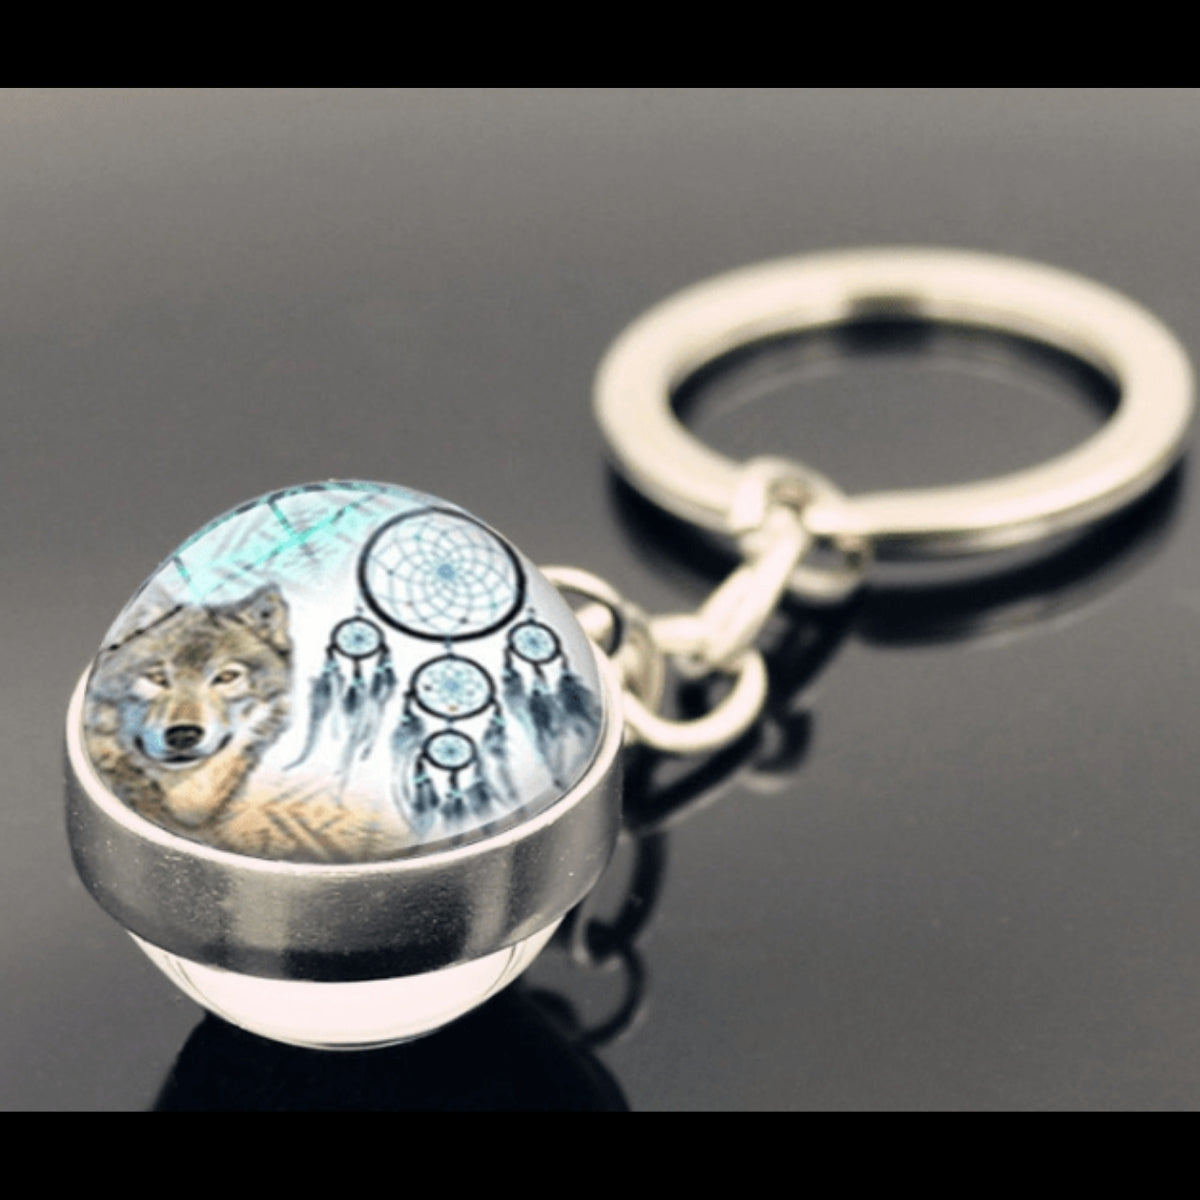 Glow In The Dark Glass Ball Keychain